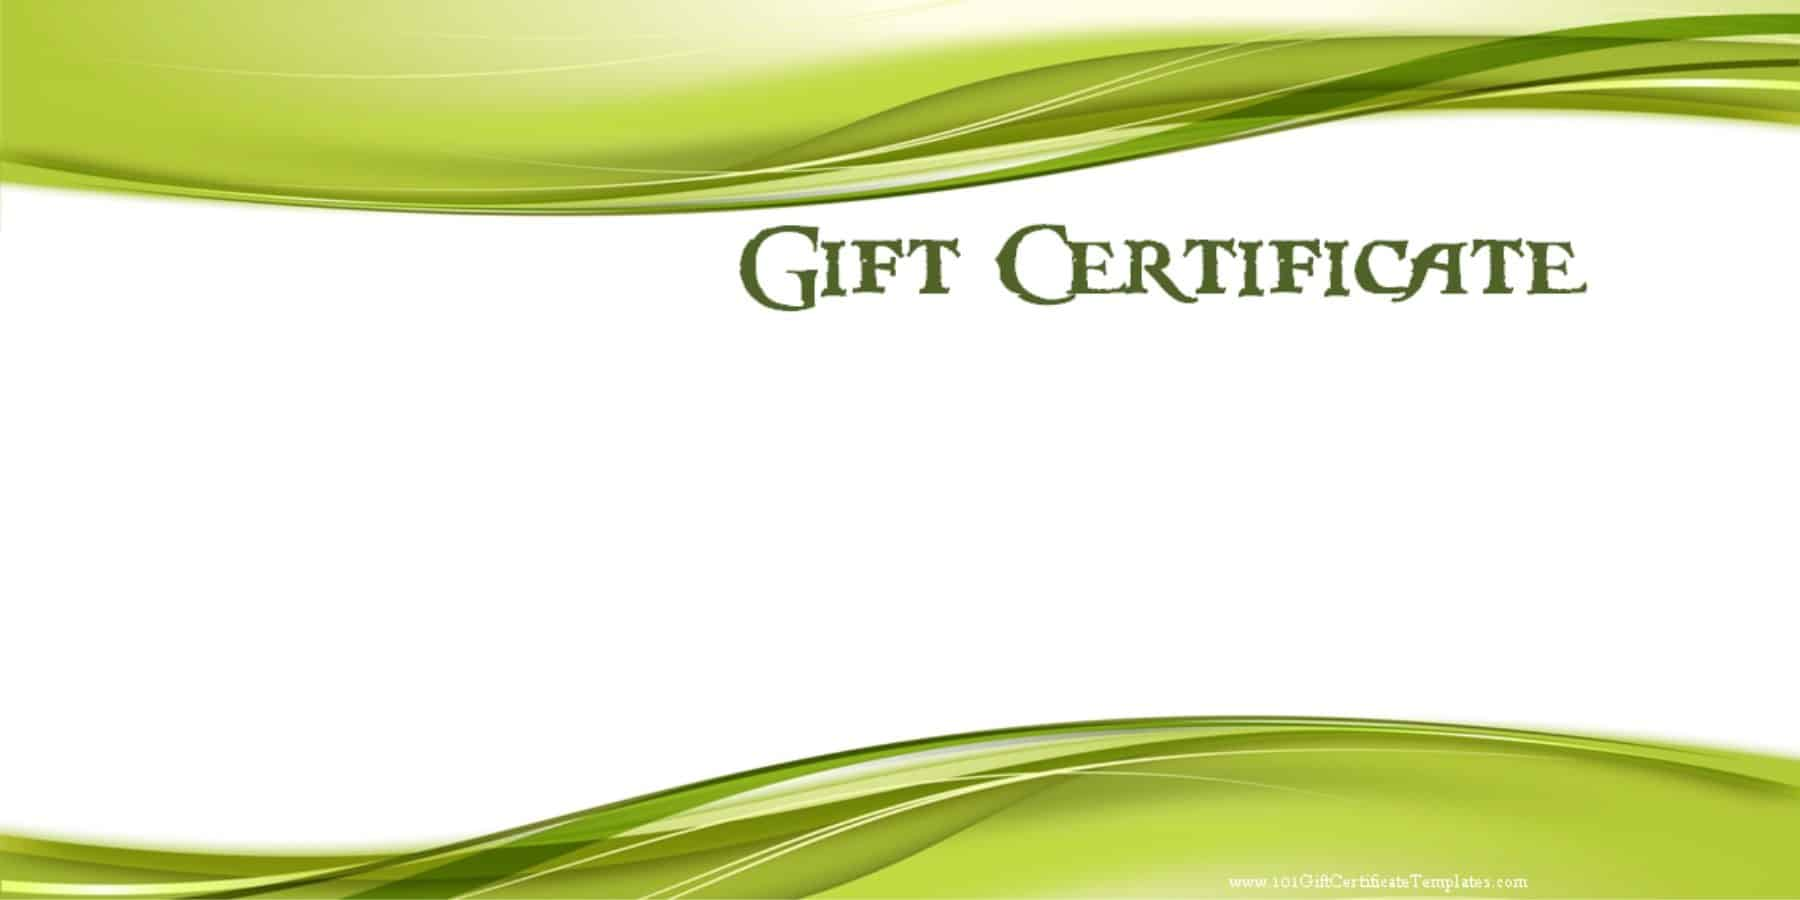 Printable gift certificate templates blank gift certificate which can be customized yelopaper Gallery